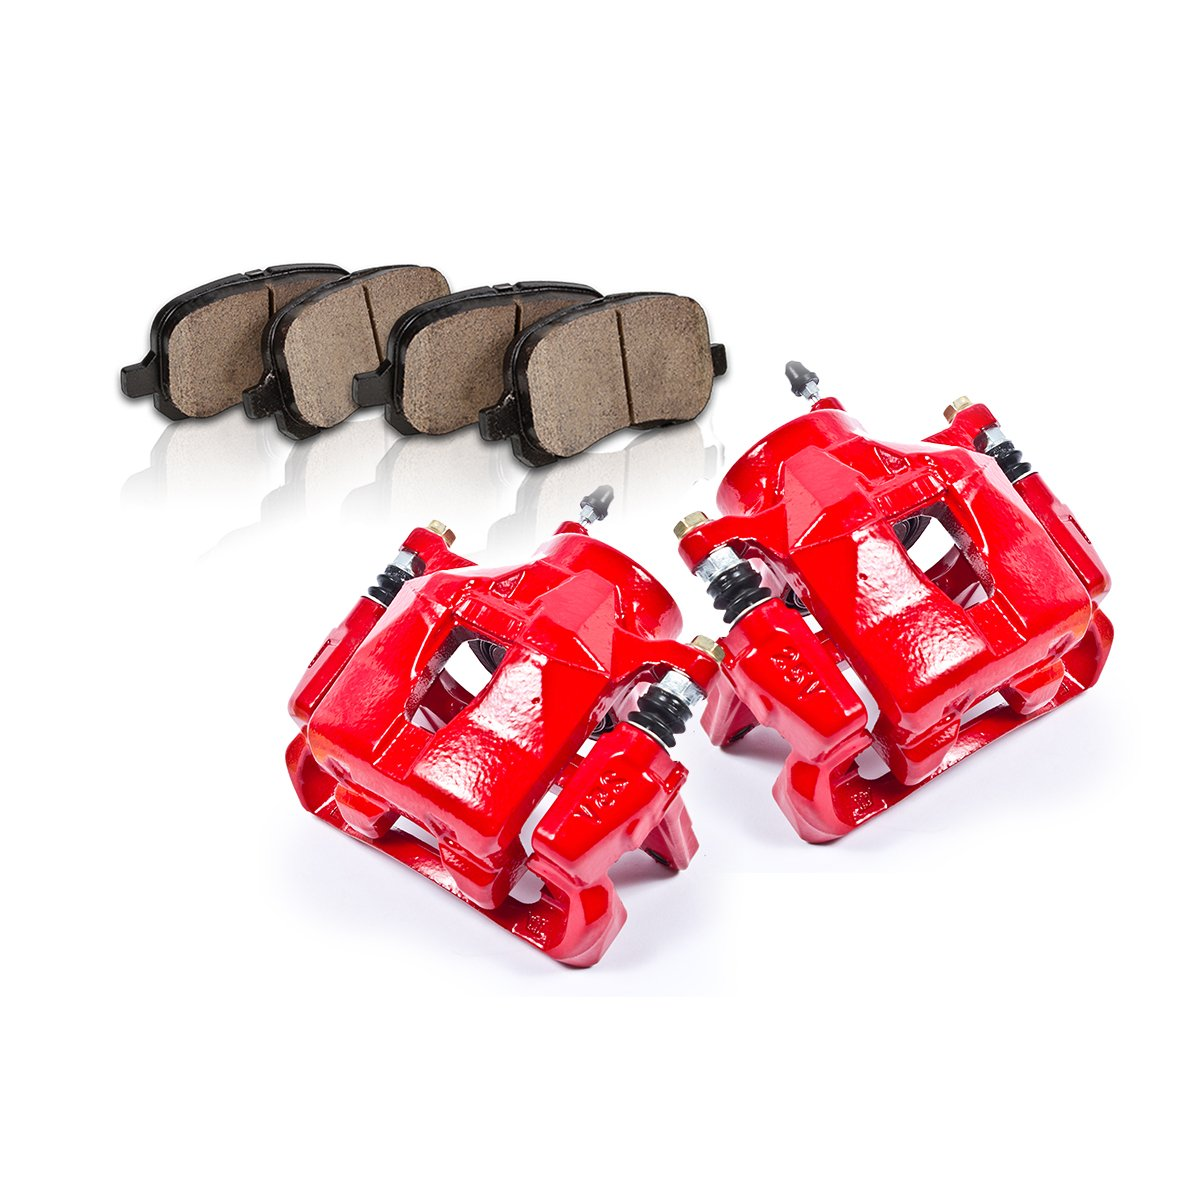 Callahan [ 2 ] FRONT Performance Grade Semi-Loaded Red Caliper Set + Ceramic Brake Pads callahan [ 2 ] front performance grade semi loaded red caliper set ceramic brake pads